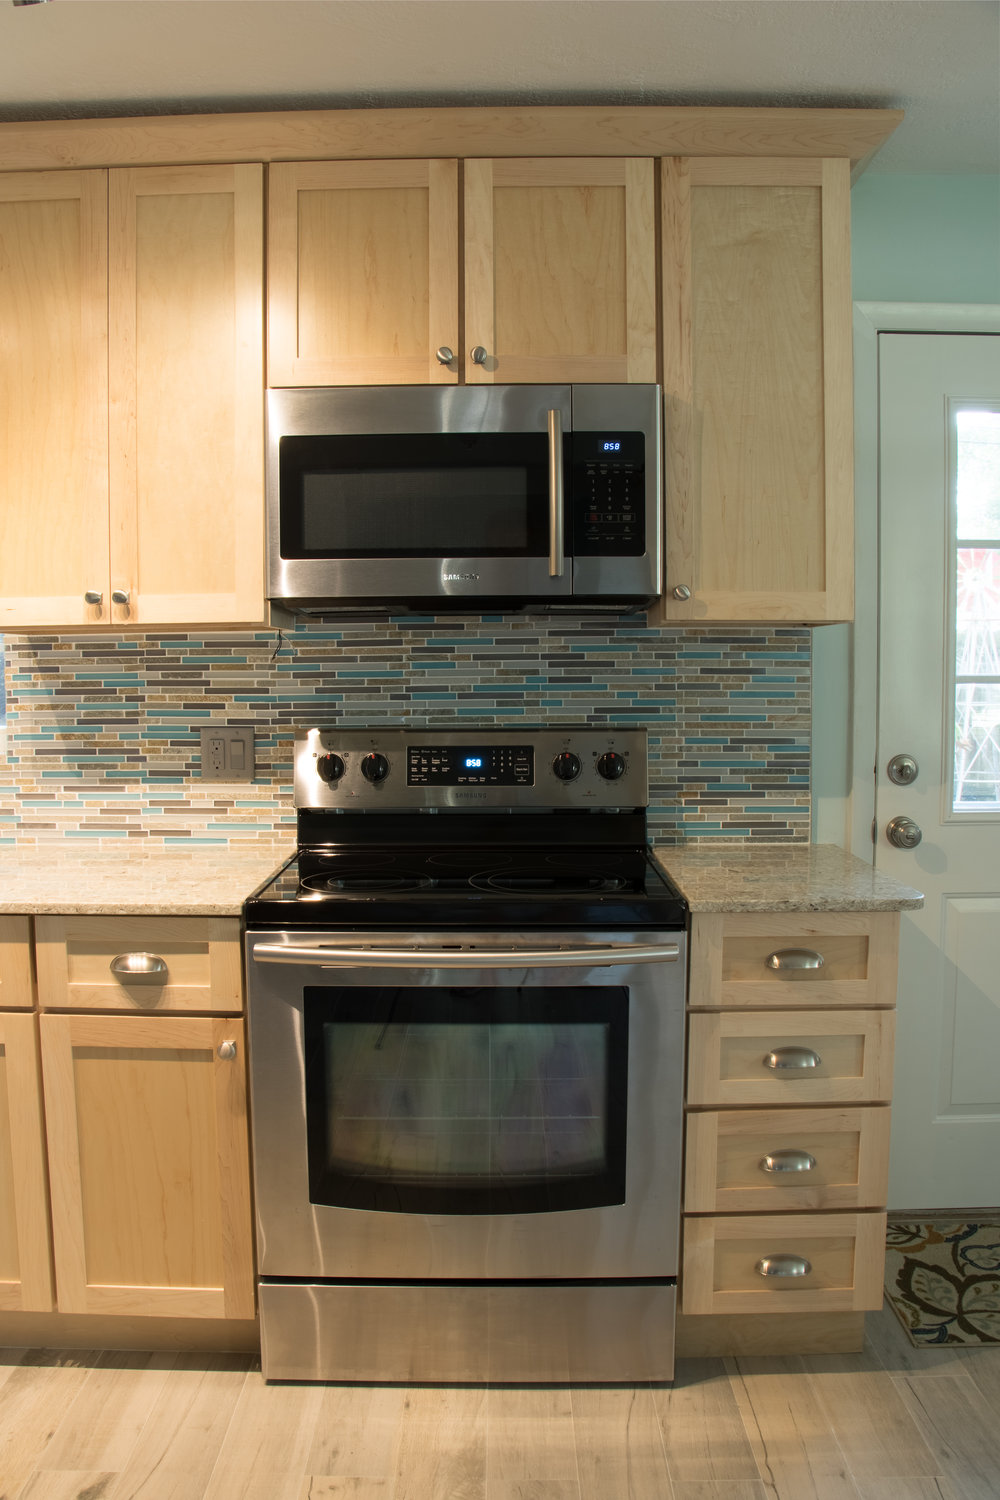 NOTI KITCHEN & BATH113.jpg